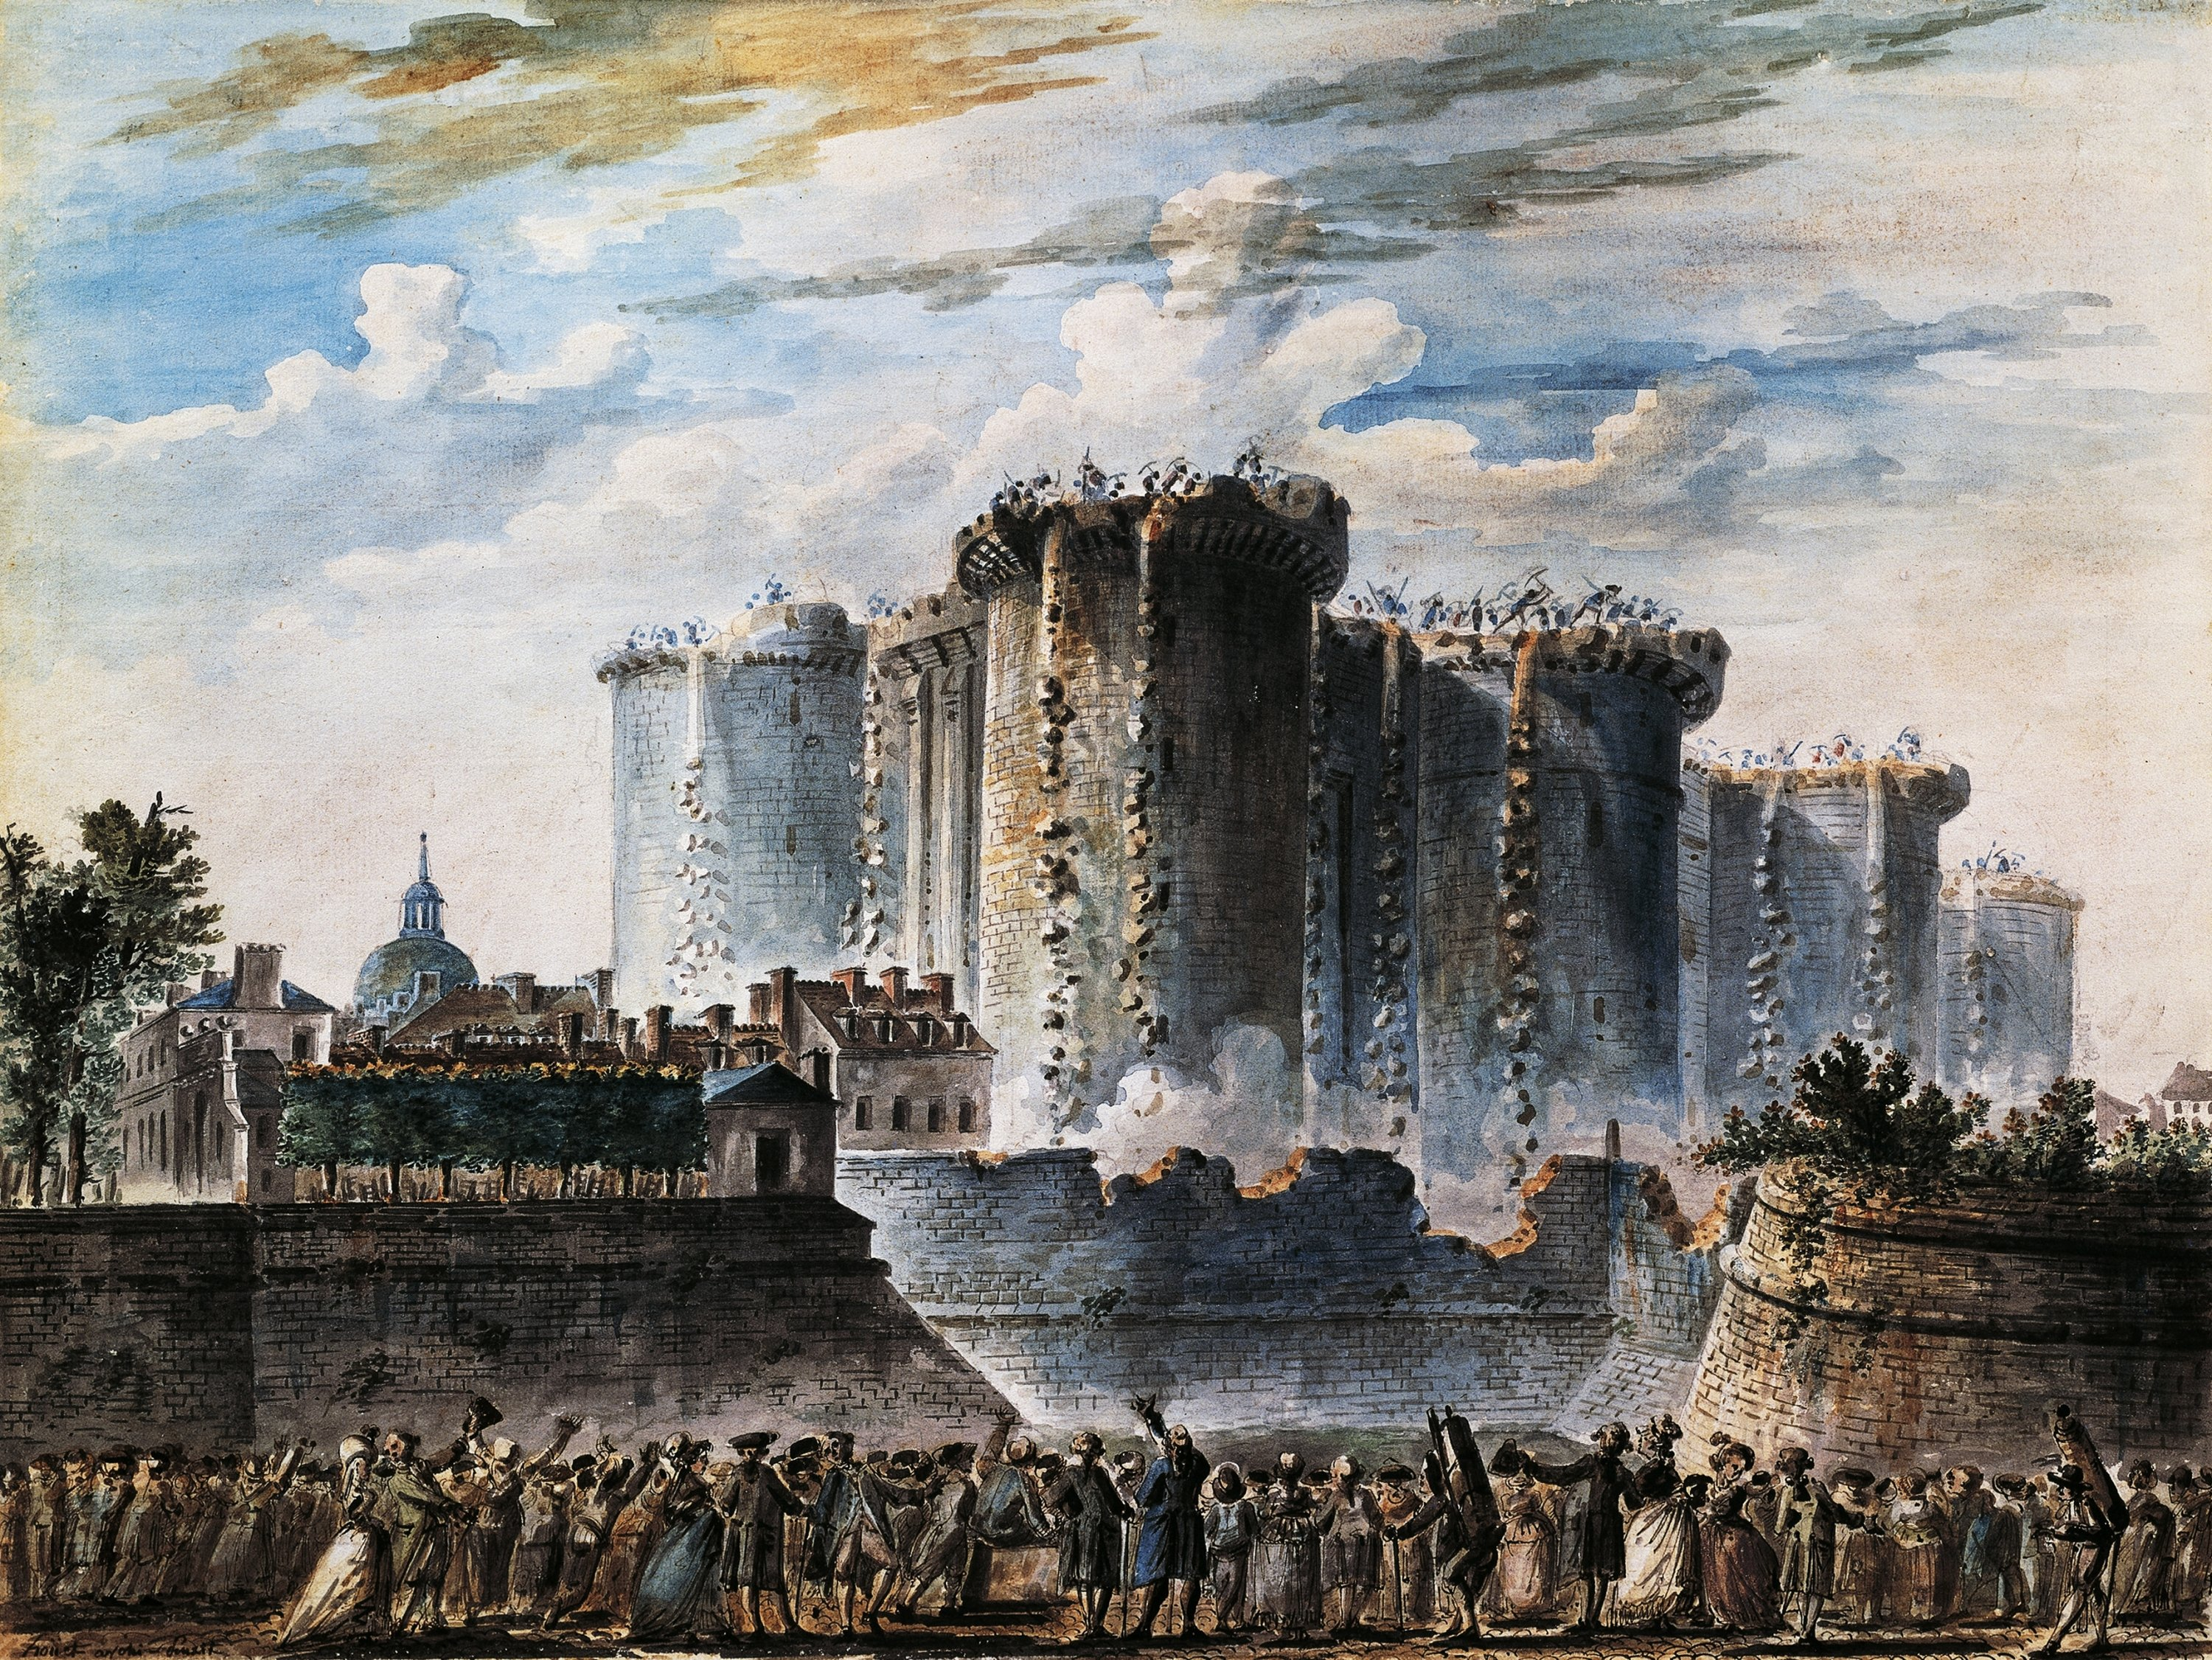 A gouache by 18th-century French painter Jean-Pierre Houal depicts the storming of the Bastille, a symbol of monarchial power, which became one of the flashpoints in the 1789 French Revolution. (Photo by Getty Images)